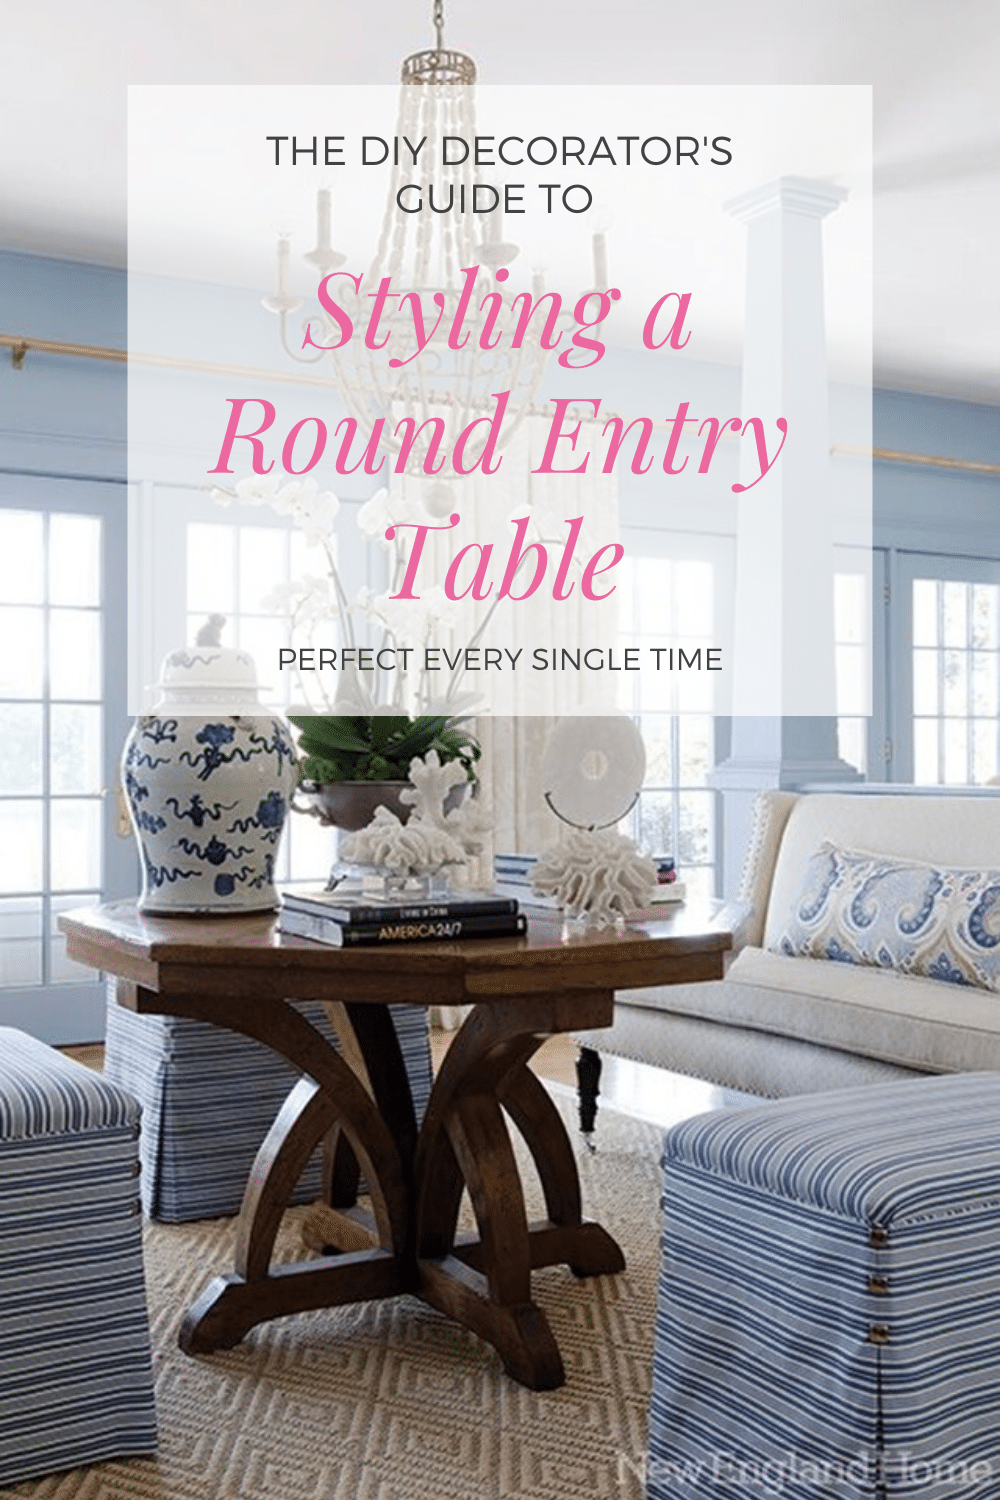 The DIY Decorator's Guide to Styling the Perfect Round Entry Table Every Single Time from StampinFool.com